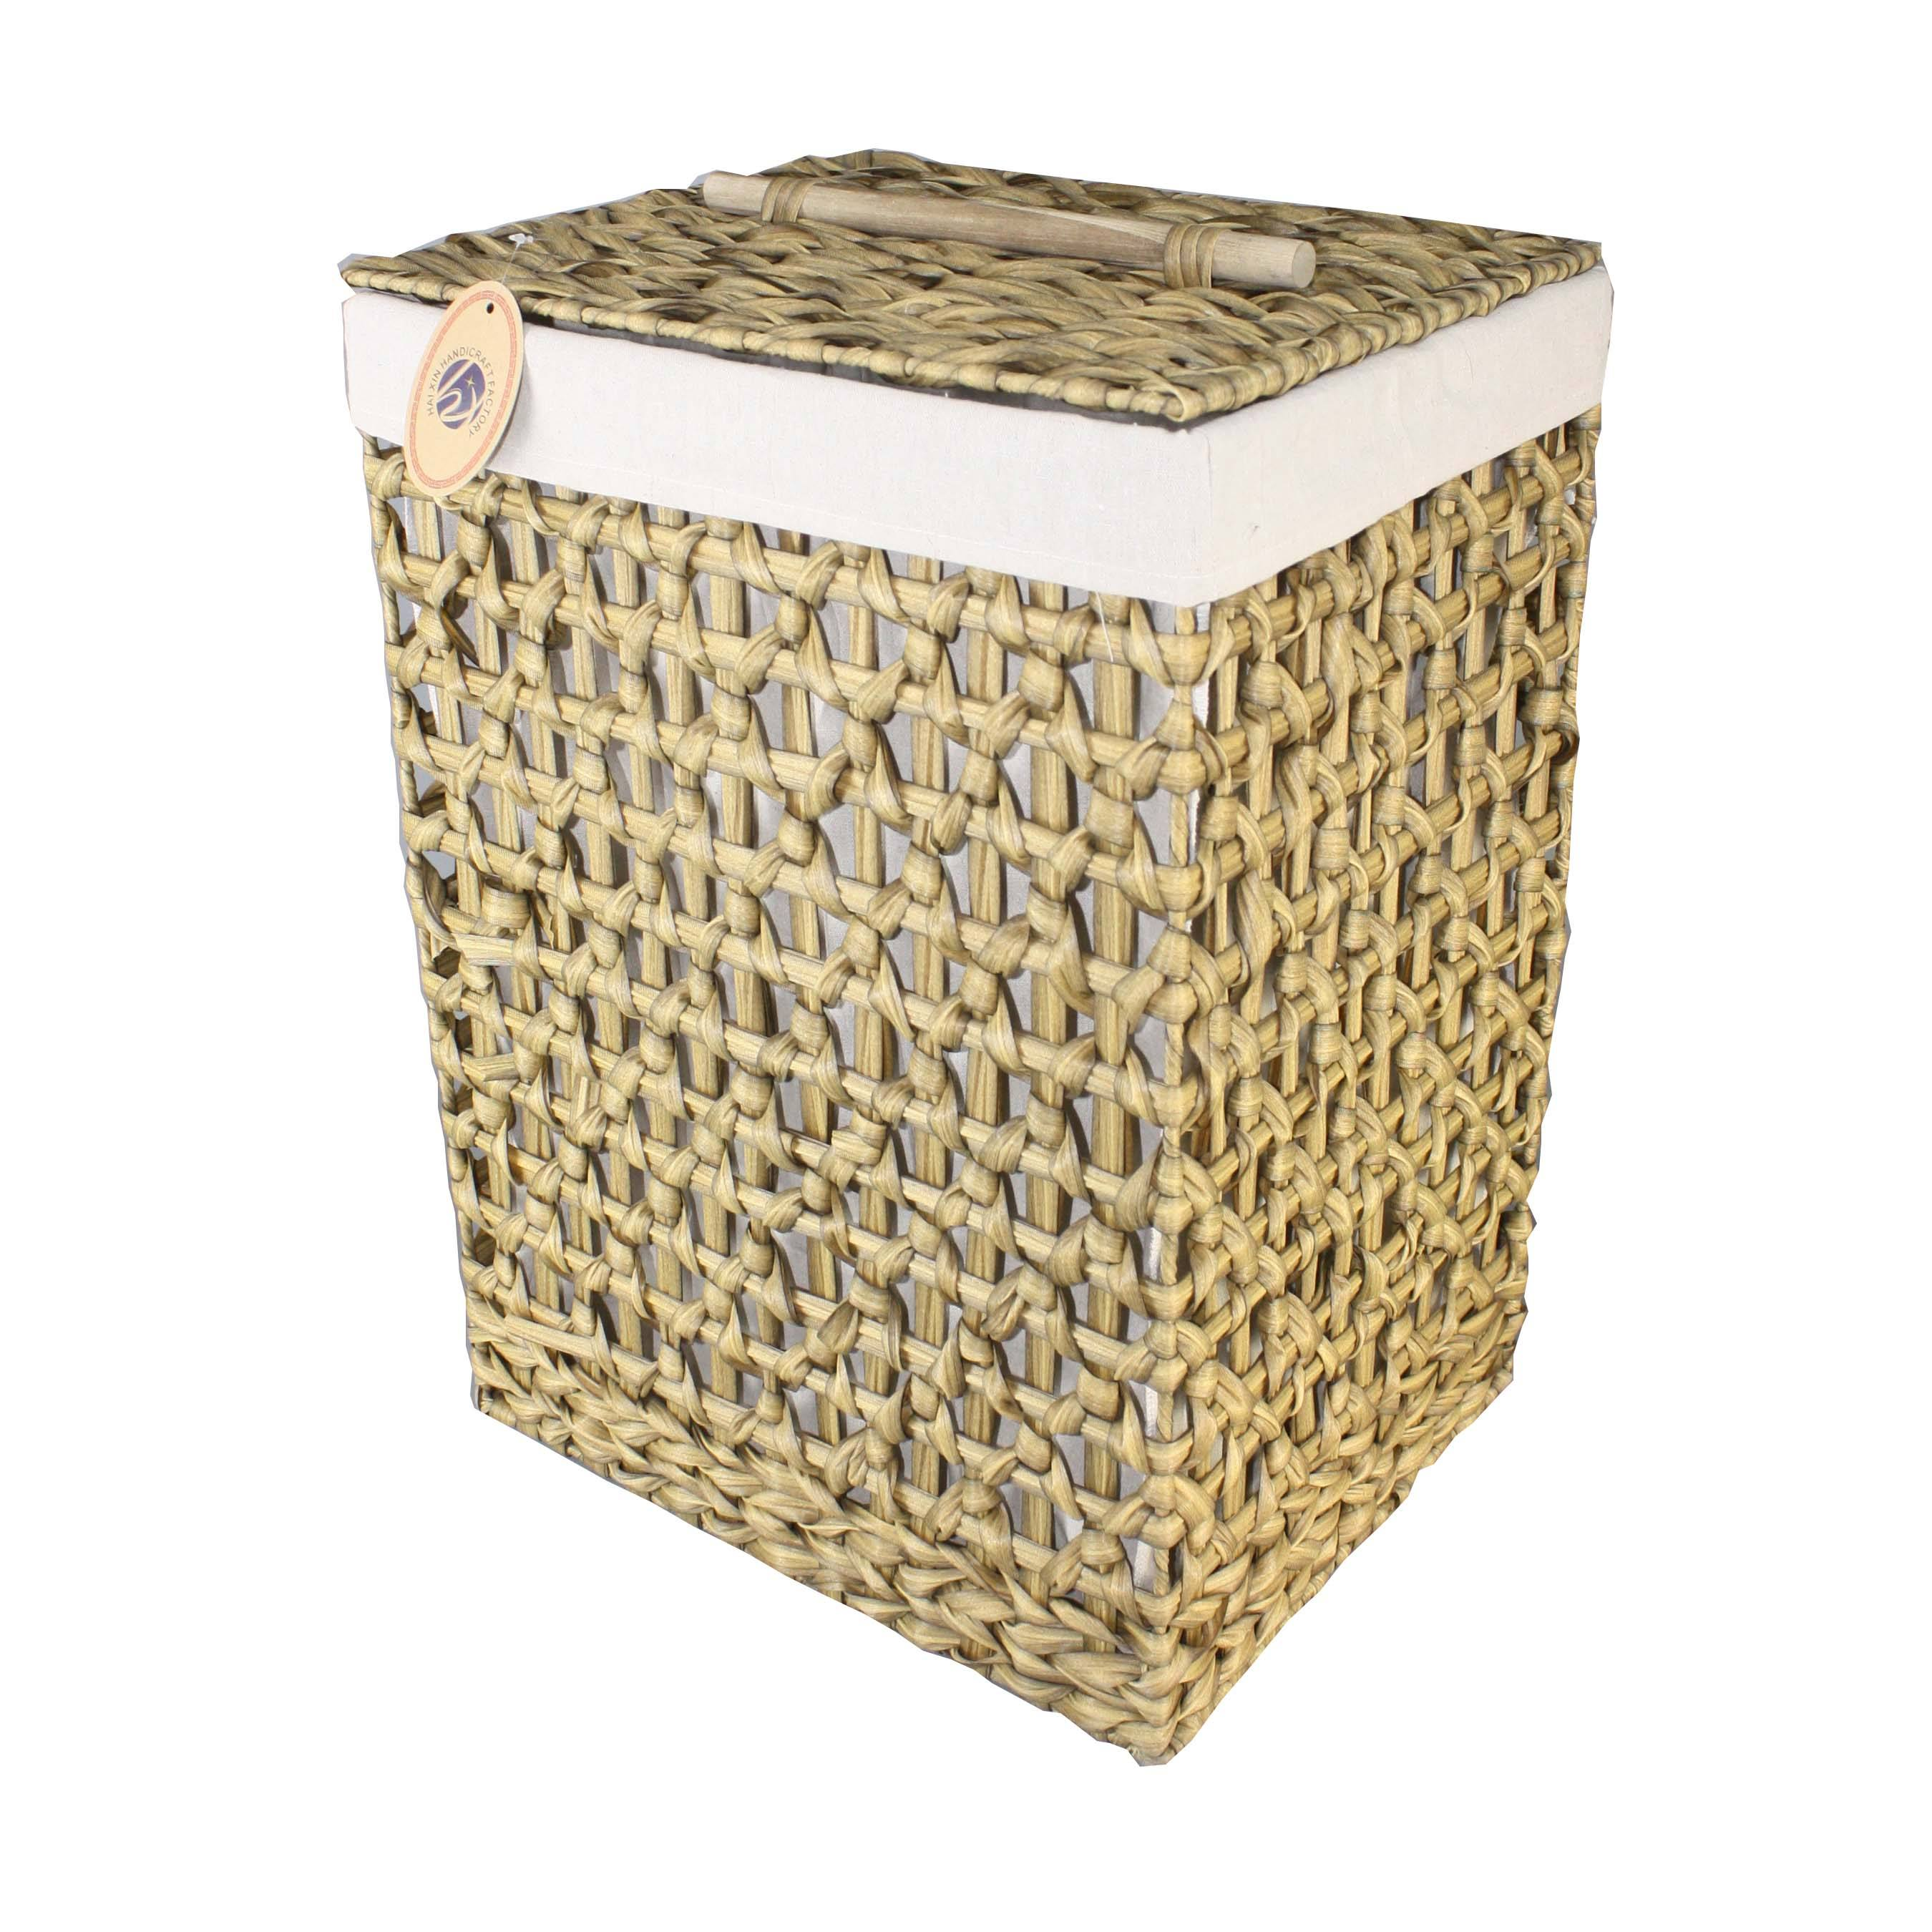 China Laundry Wicker Hampers China Laundry Wicker Hampers Manufacturers And Suppliers On Alibaba Com